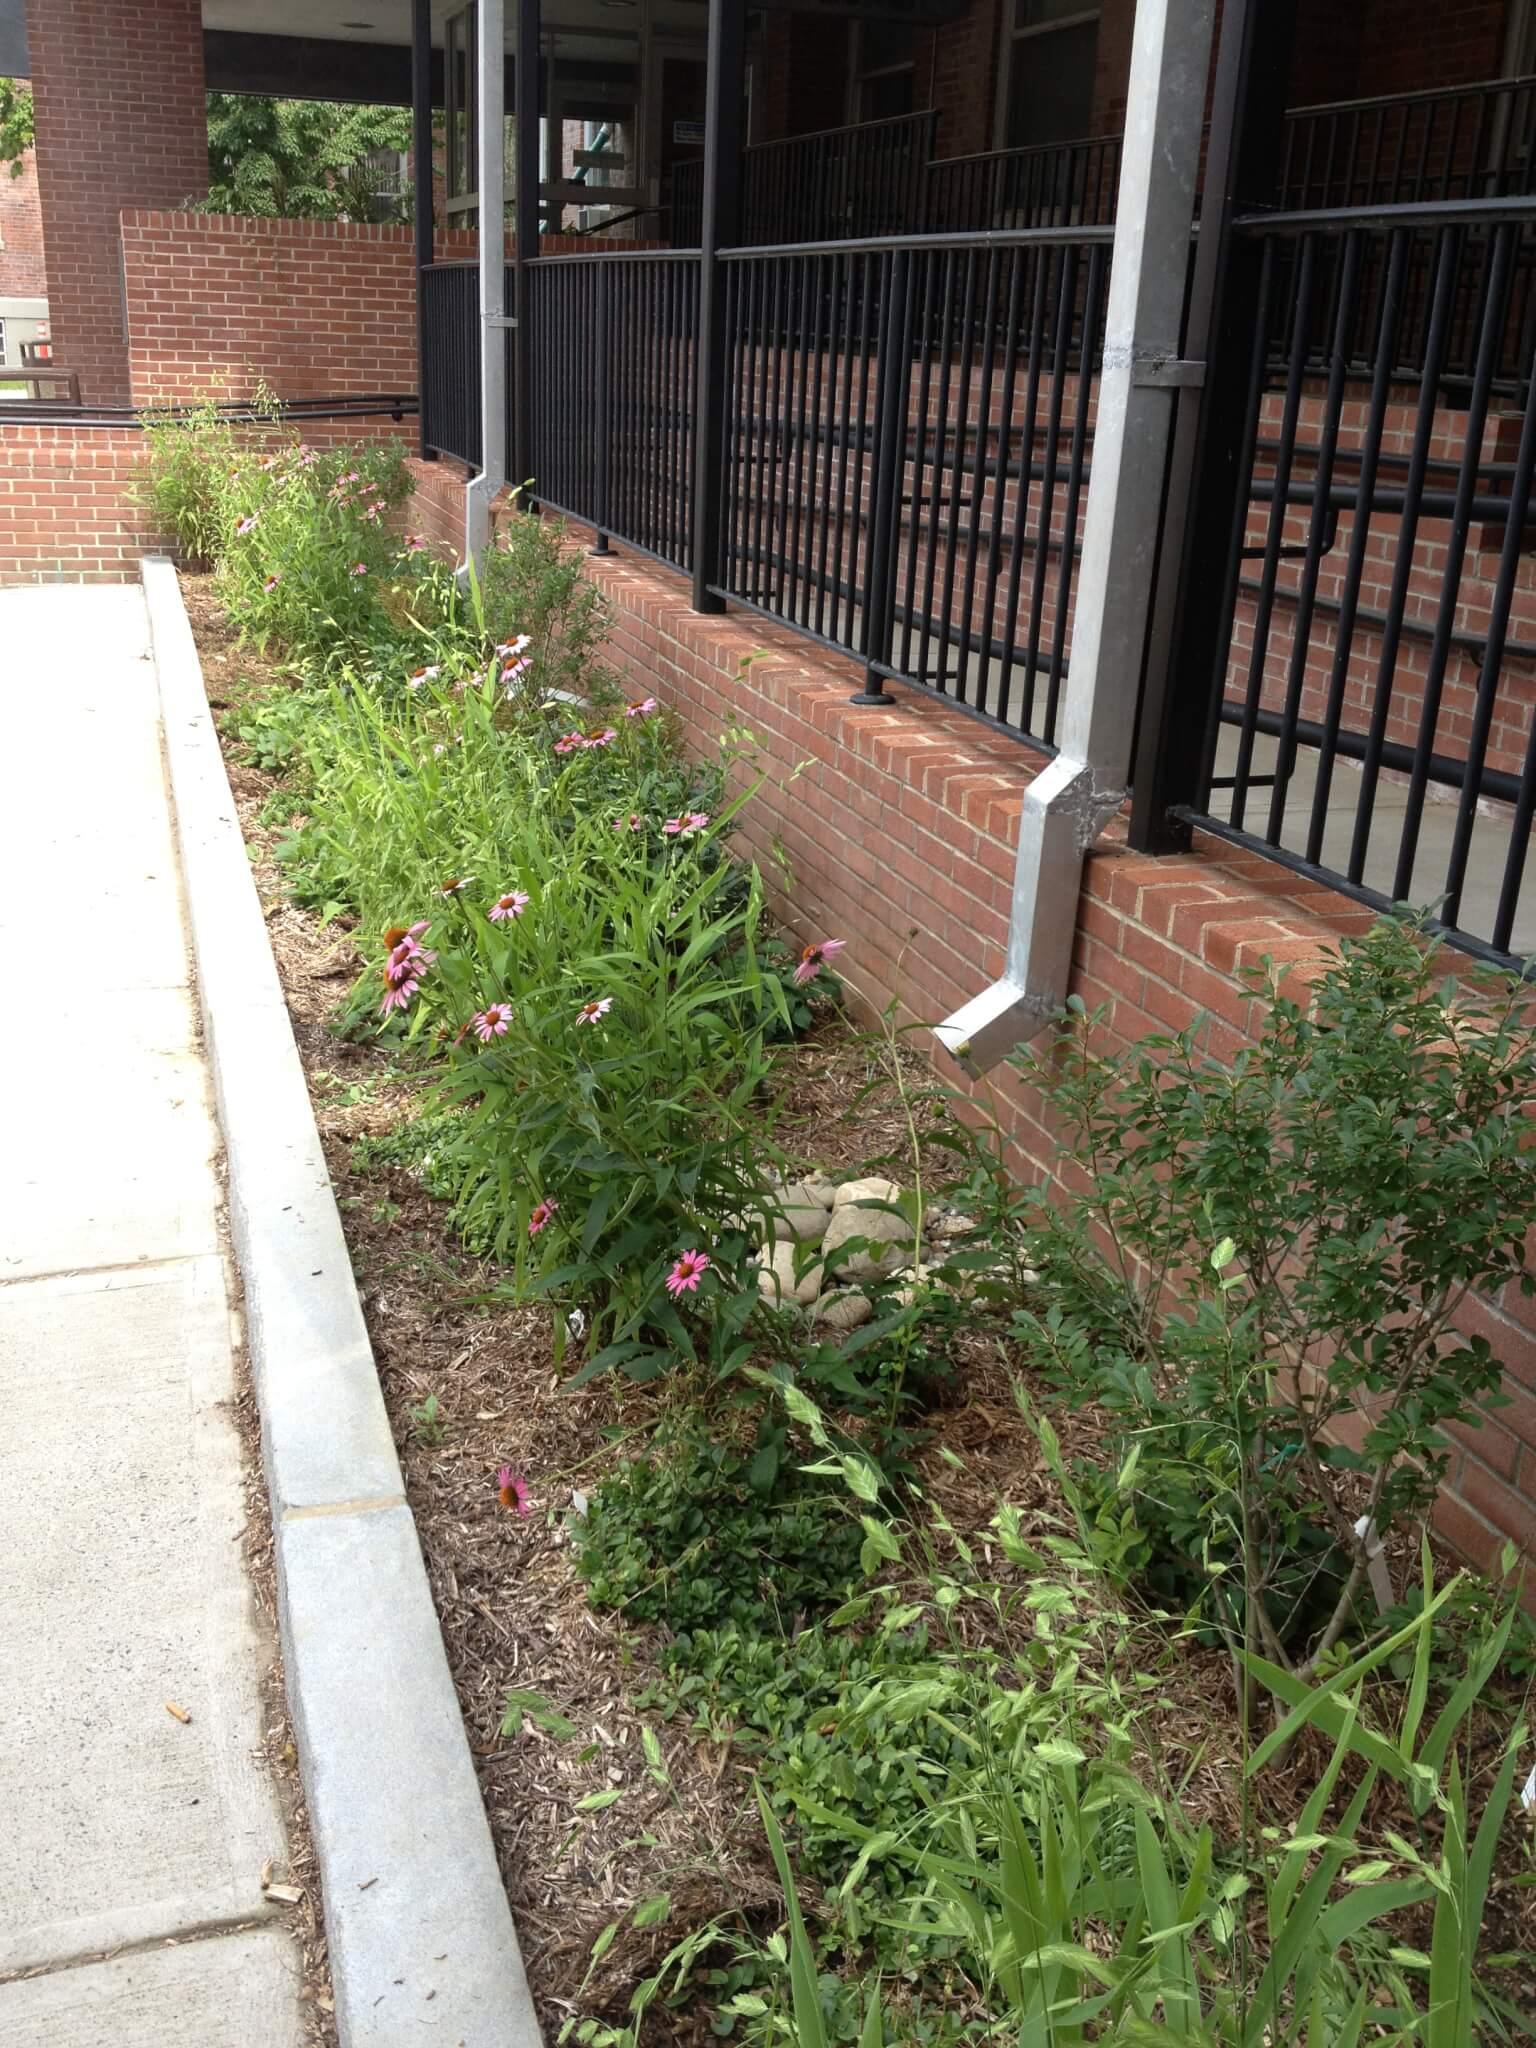 Former impervious surface transformed to infiltrating rain garden.